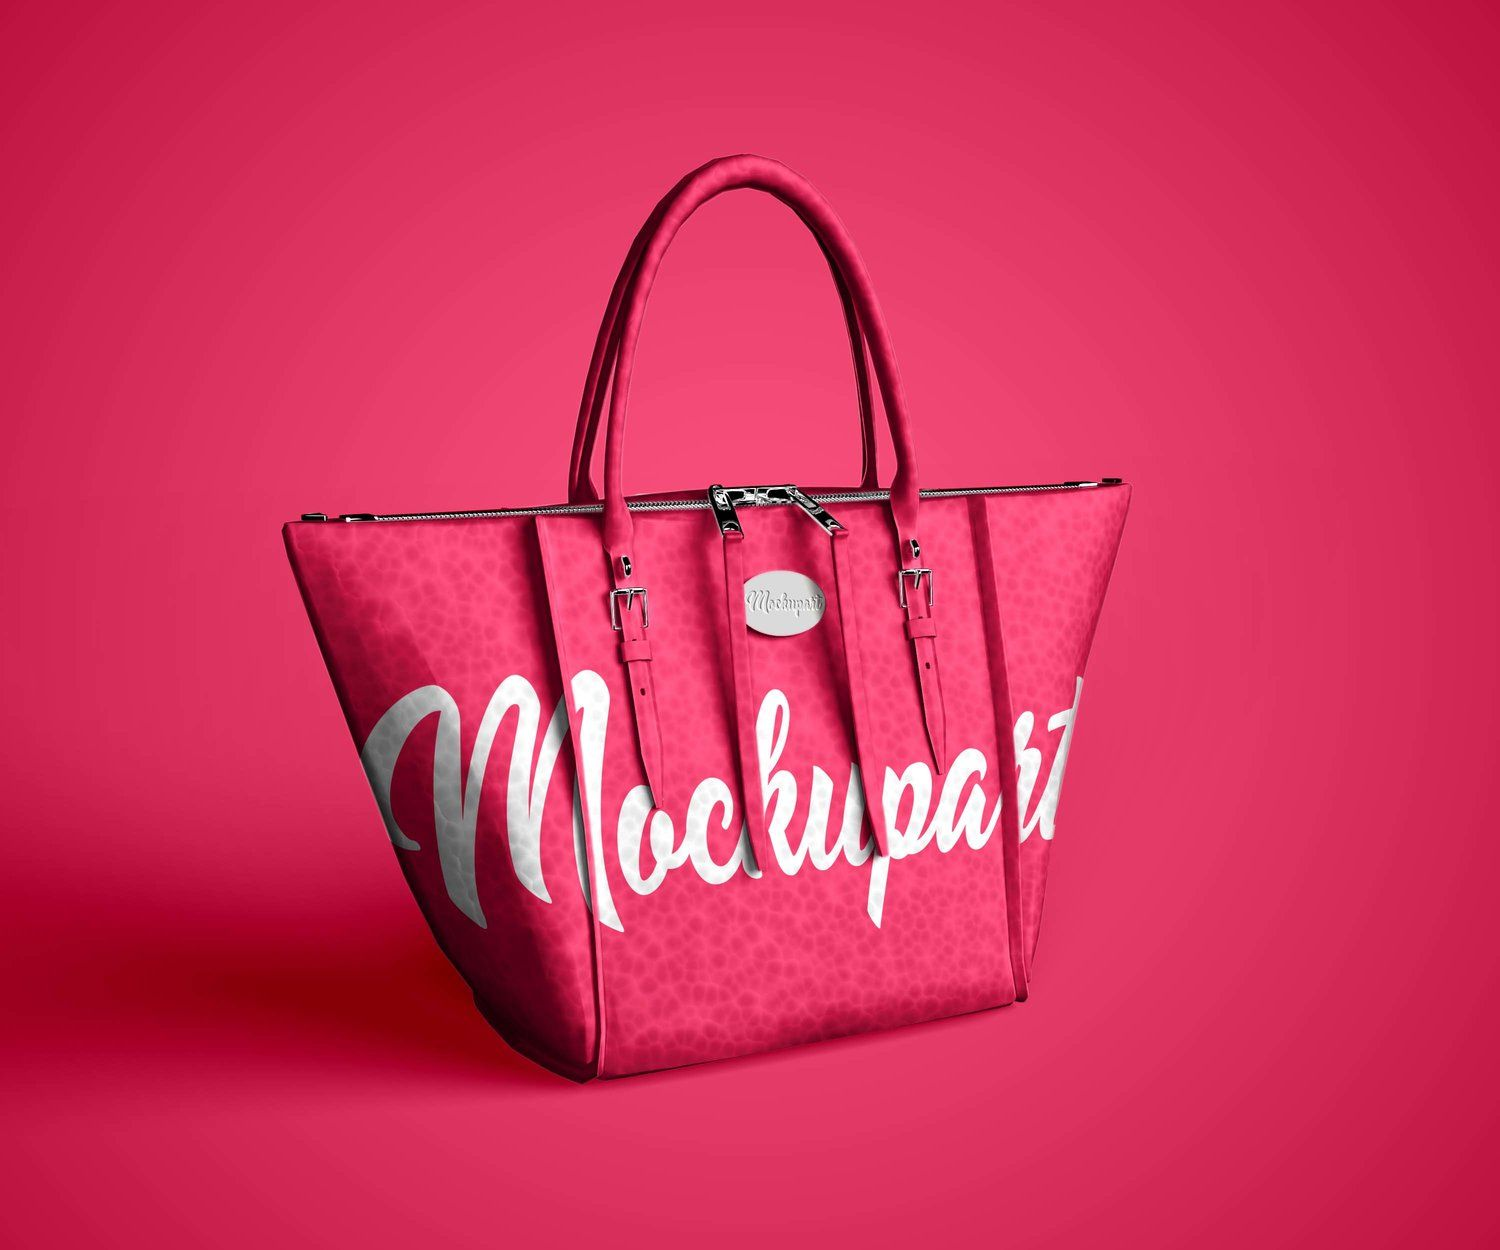 Download Free Hand Bag Mockup Psd Mockuphut Exclusive Bag Mockup Bags Coach Horse And Carriage Tote